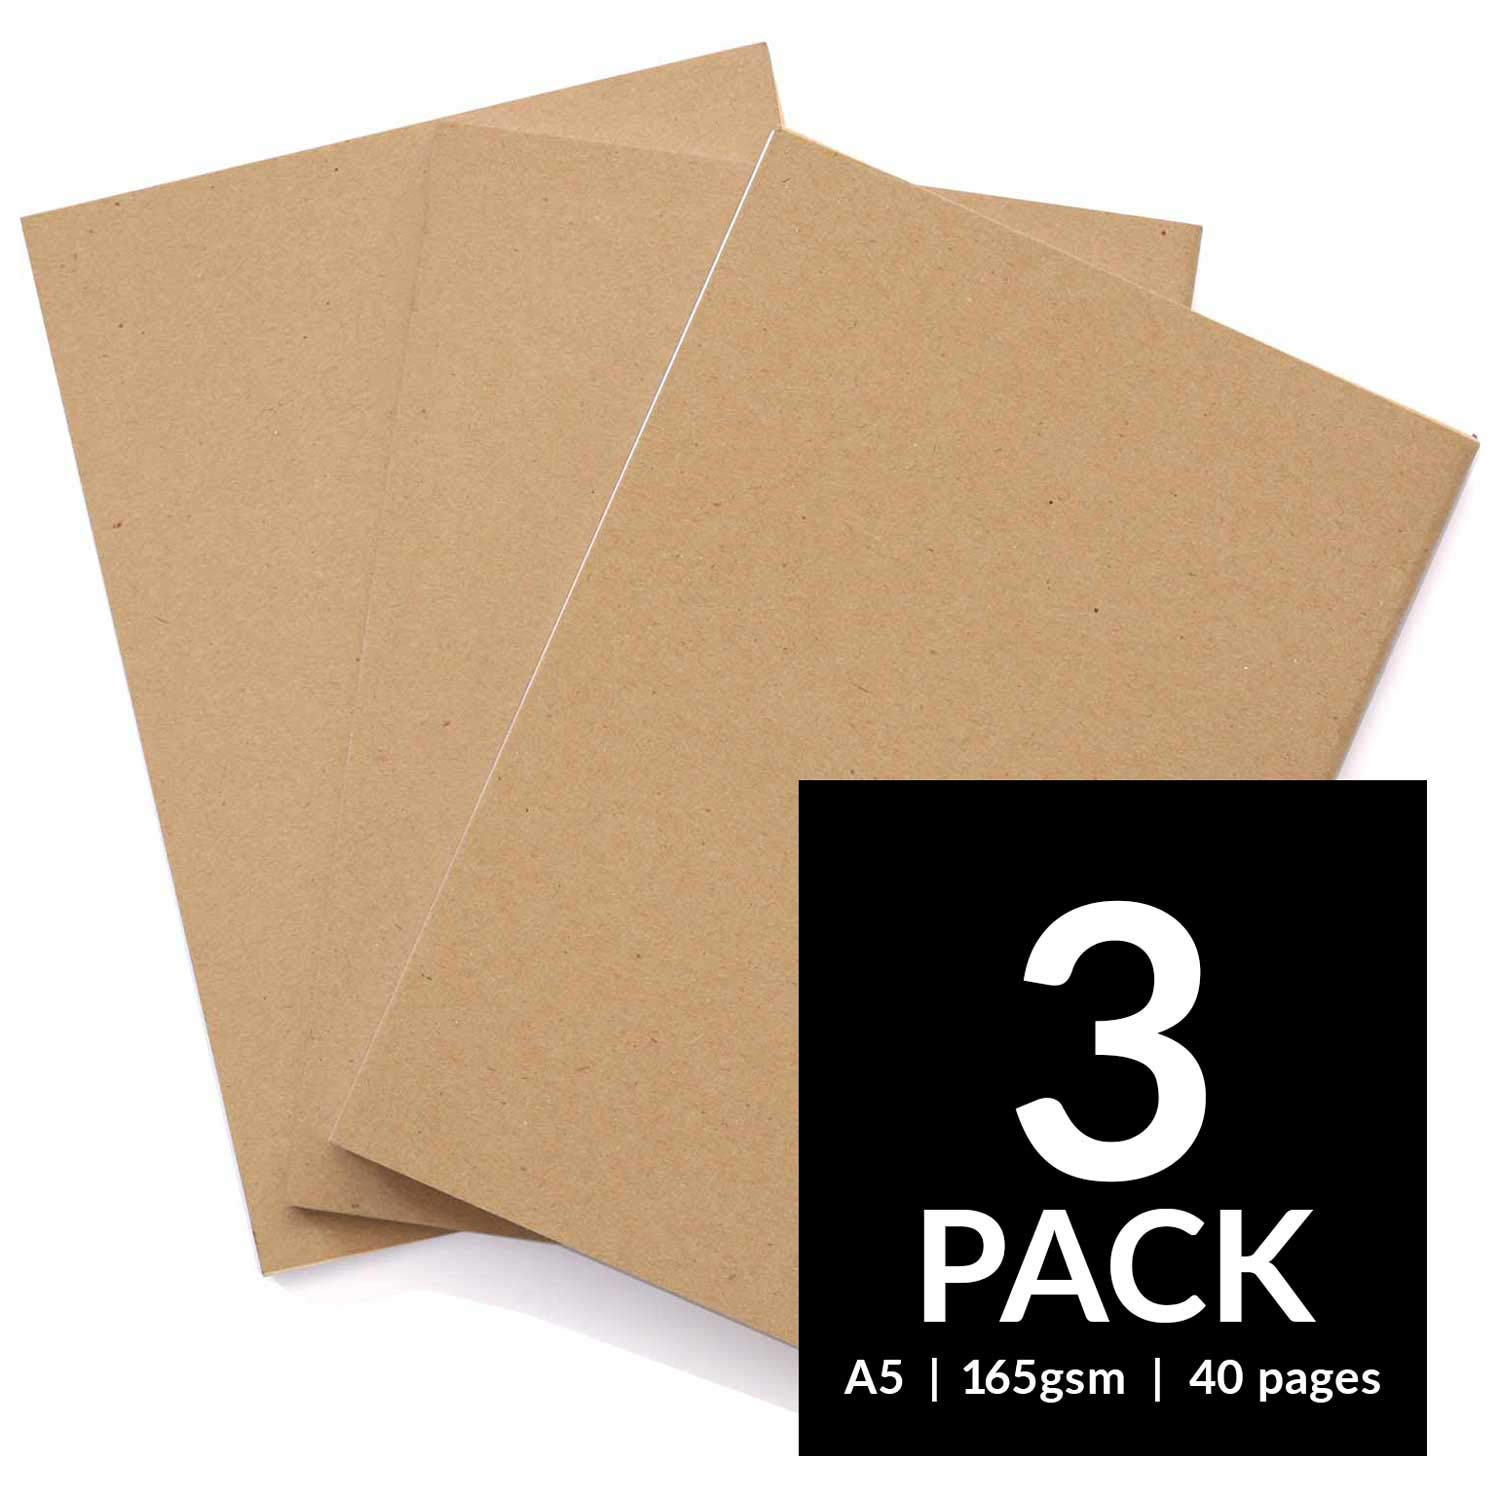 Sketchbooks - Soft Cover Starter Sketch Book and White 165 GSM Cartridge Paper Sketch Pad with Sizes A3 and A4 for Mixed Media Use (Pack of 2 - A3, Black) Artistik